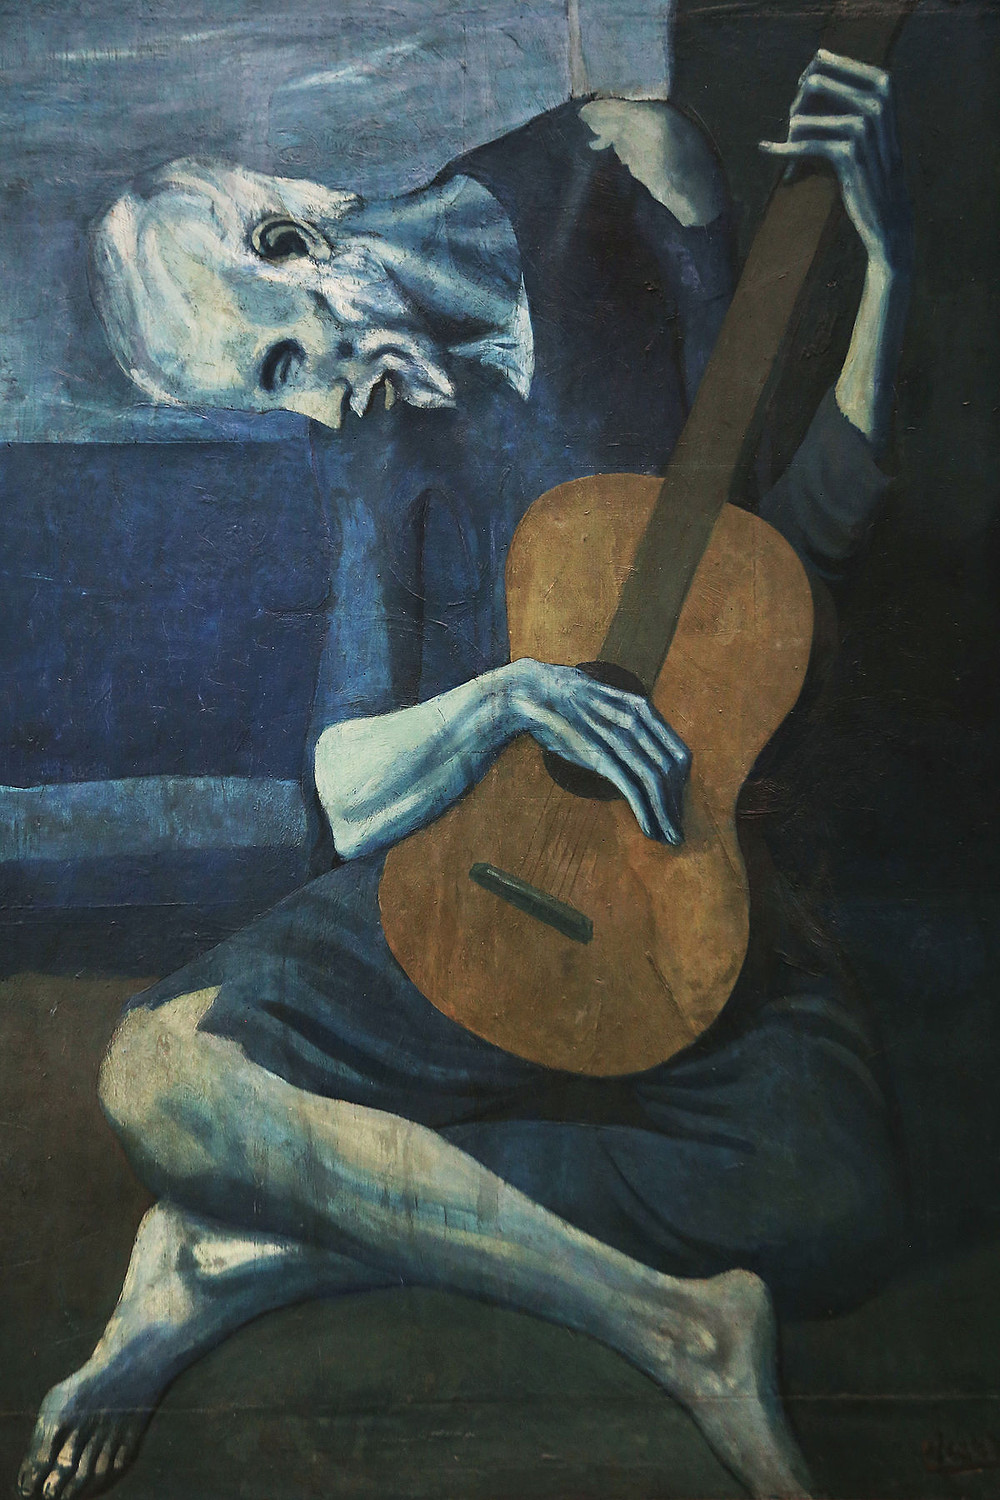 Pablo Picasso, 'The Old Guitarist', 1904